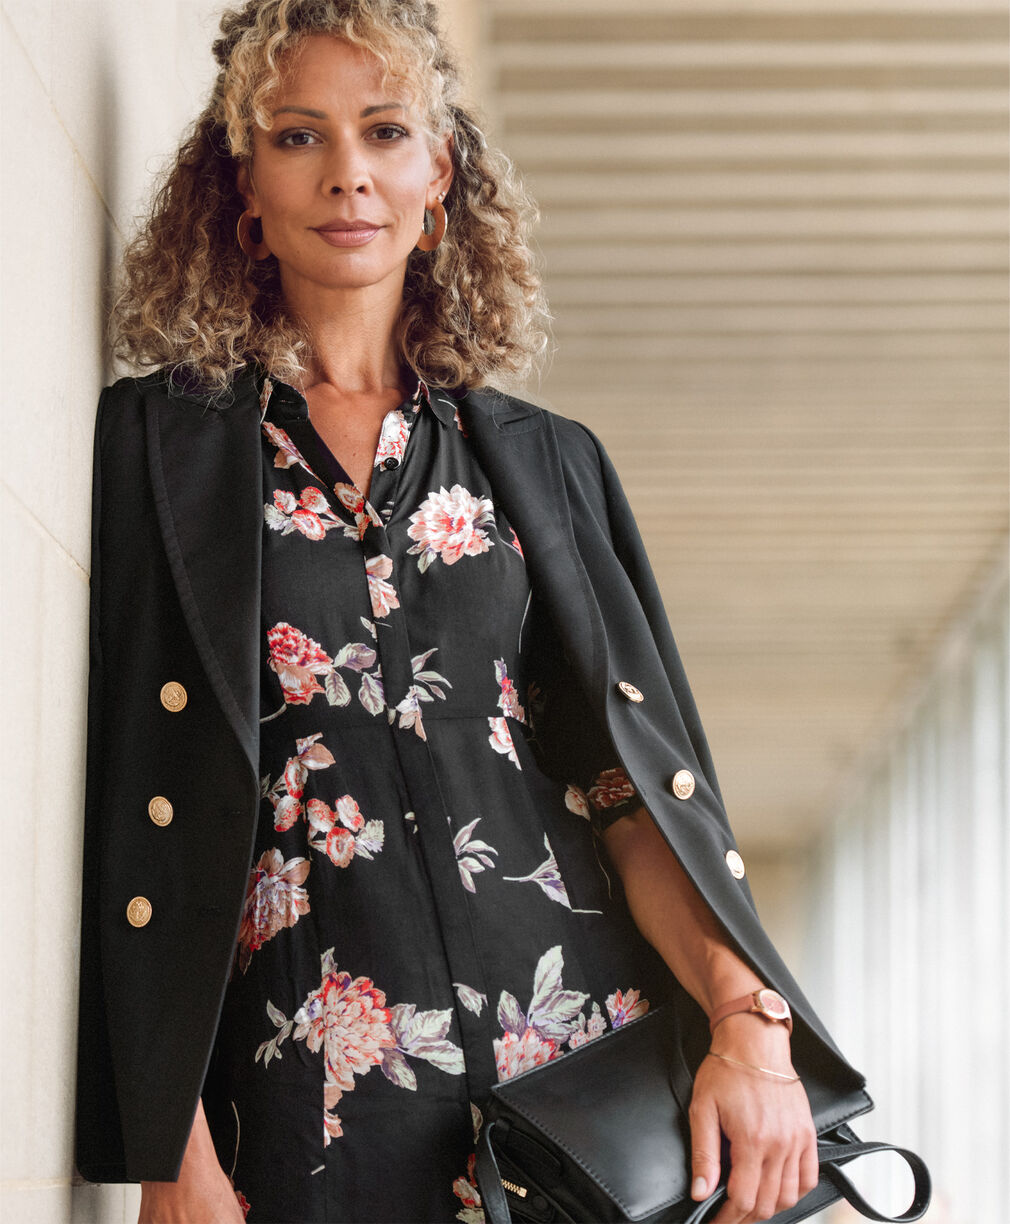 The Frockstar Dress | The Friday Blazer | Frockstar Button-through Dress | By Cotton Traders